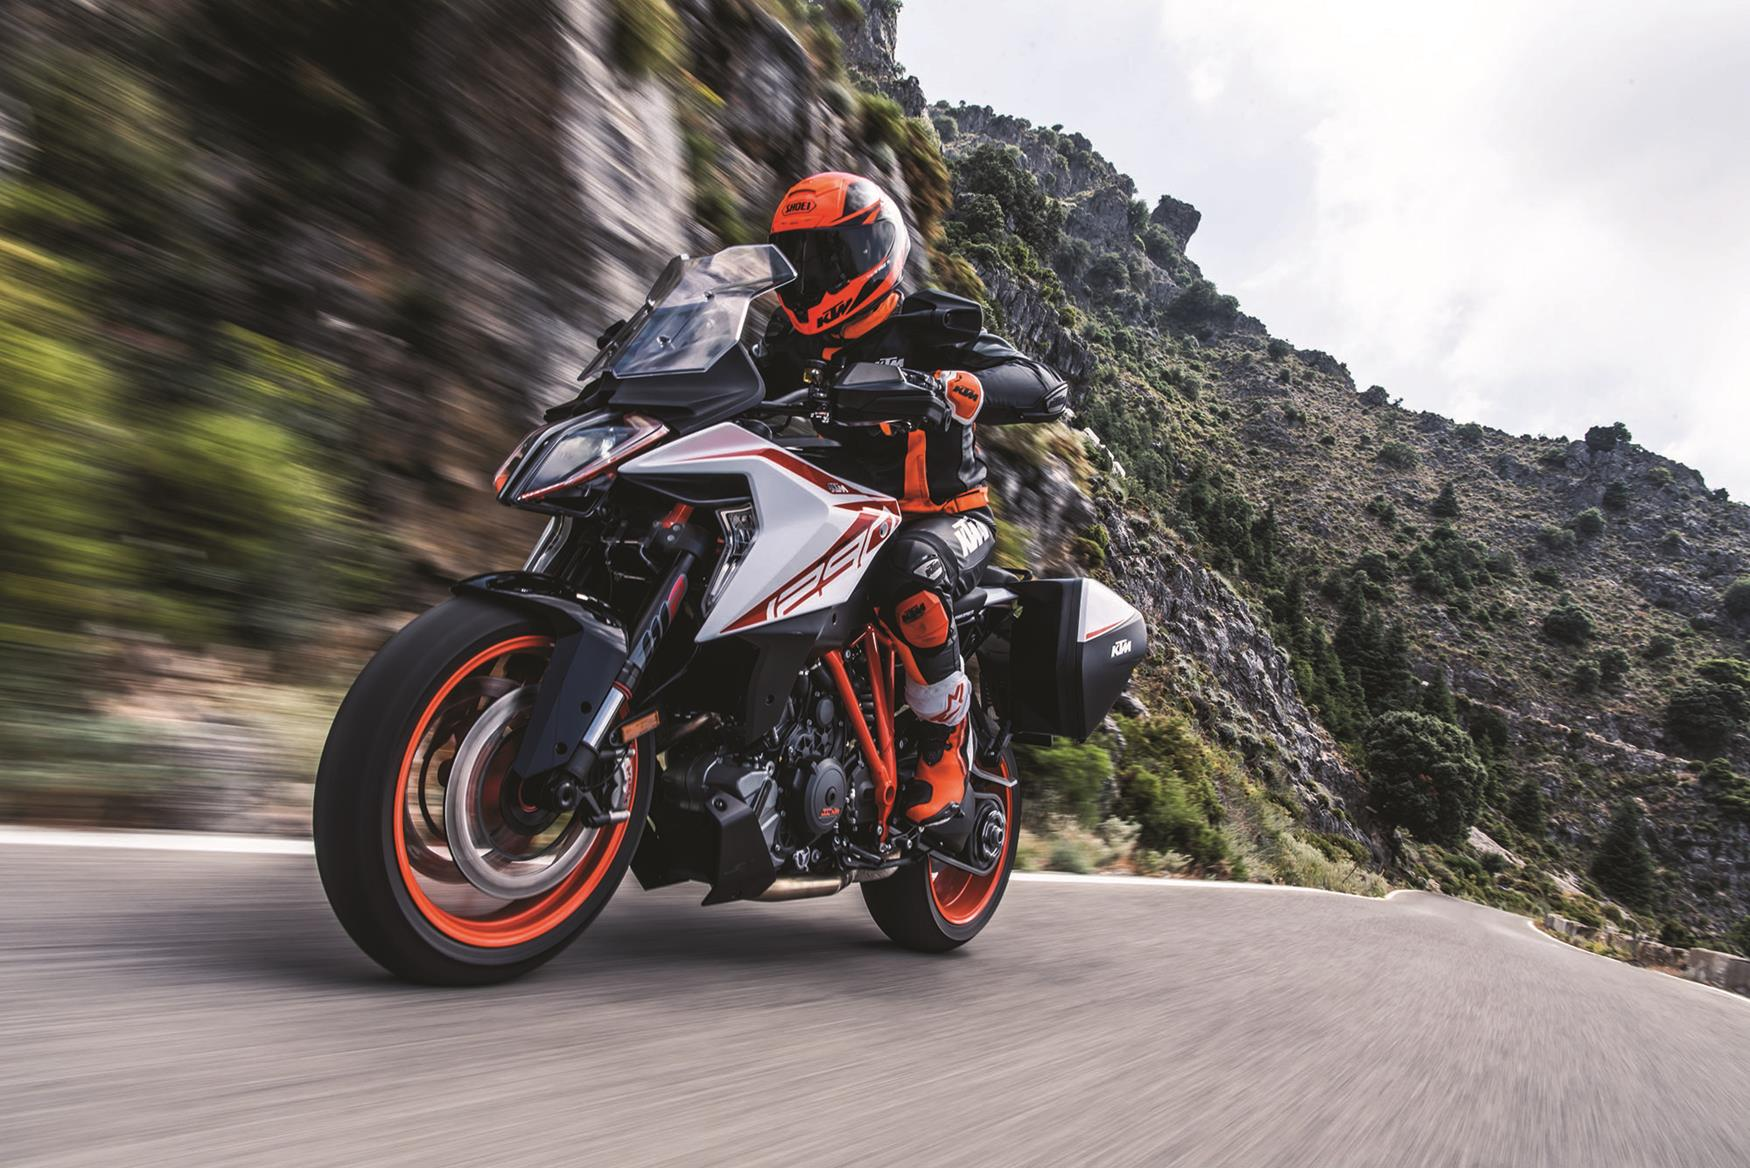 intermot 2019 ktm 1290 super duke gt unveiled. Black Bedroom Furniture Sets. Home Design Ideas